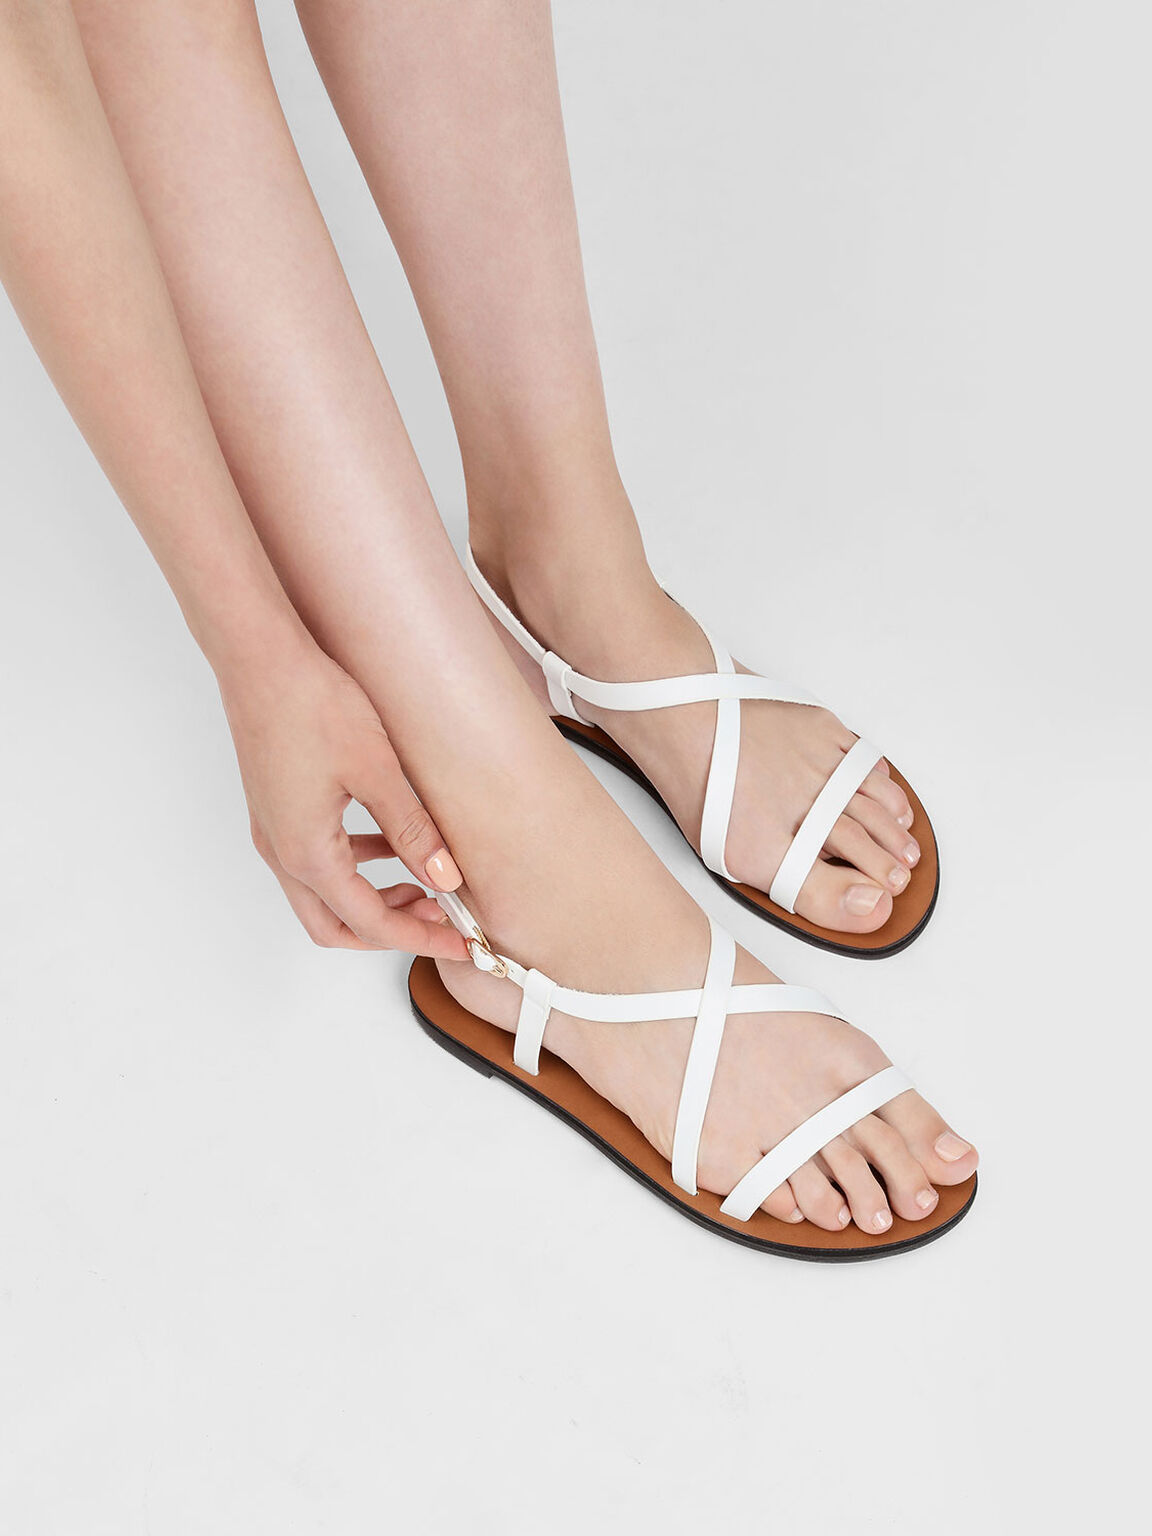 Criss Cross Sandals, White, hi-res